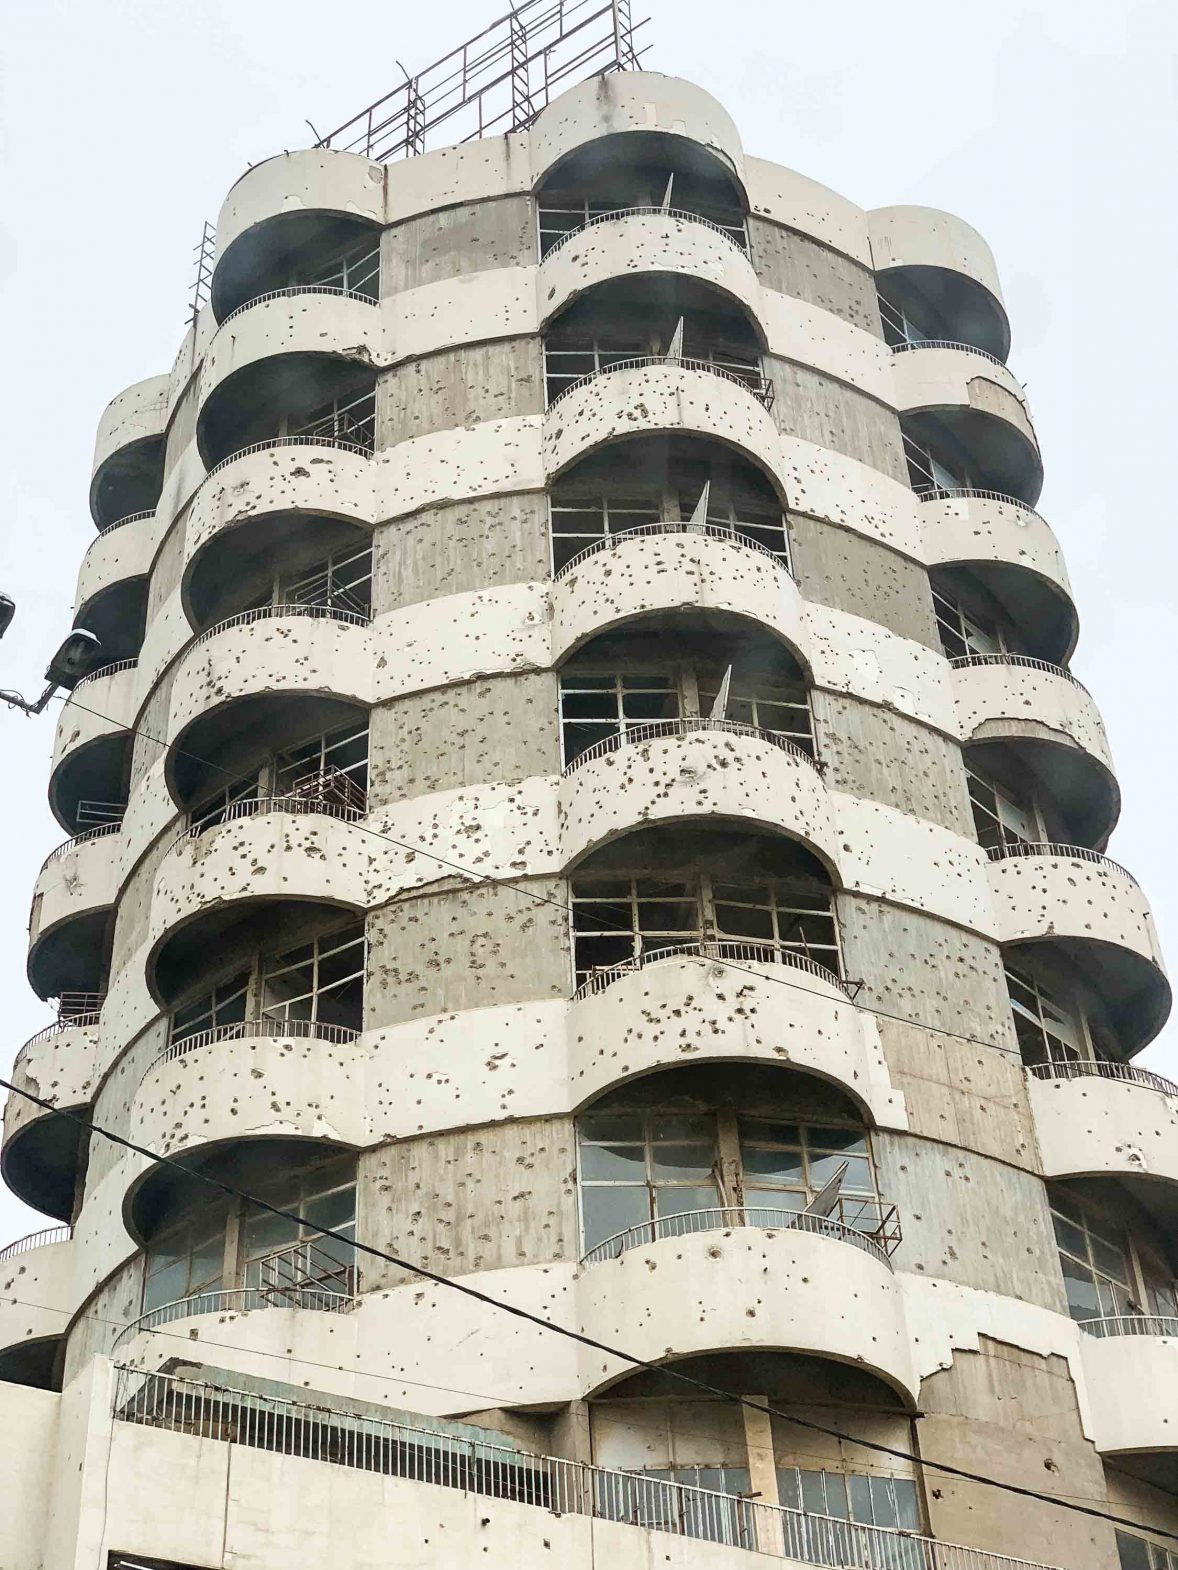 Bullet holes riddle a building in Baghdad, reminding visitors of its turbulent past.